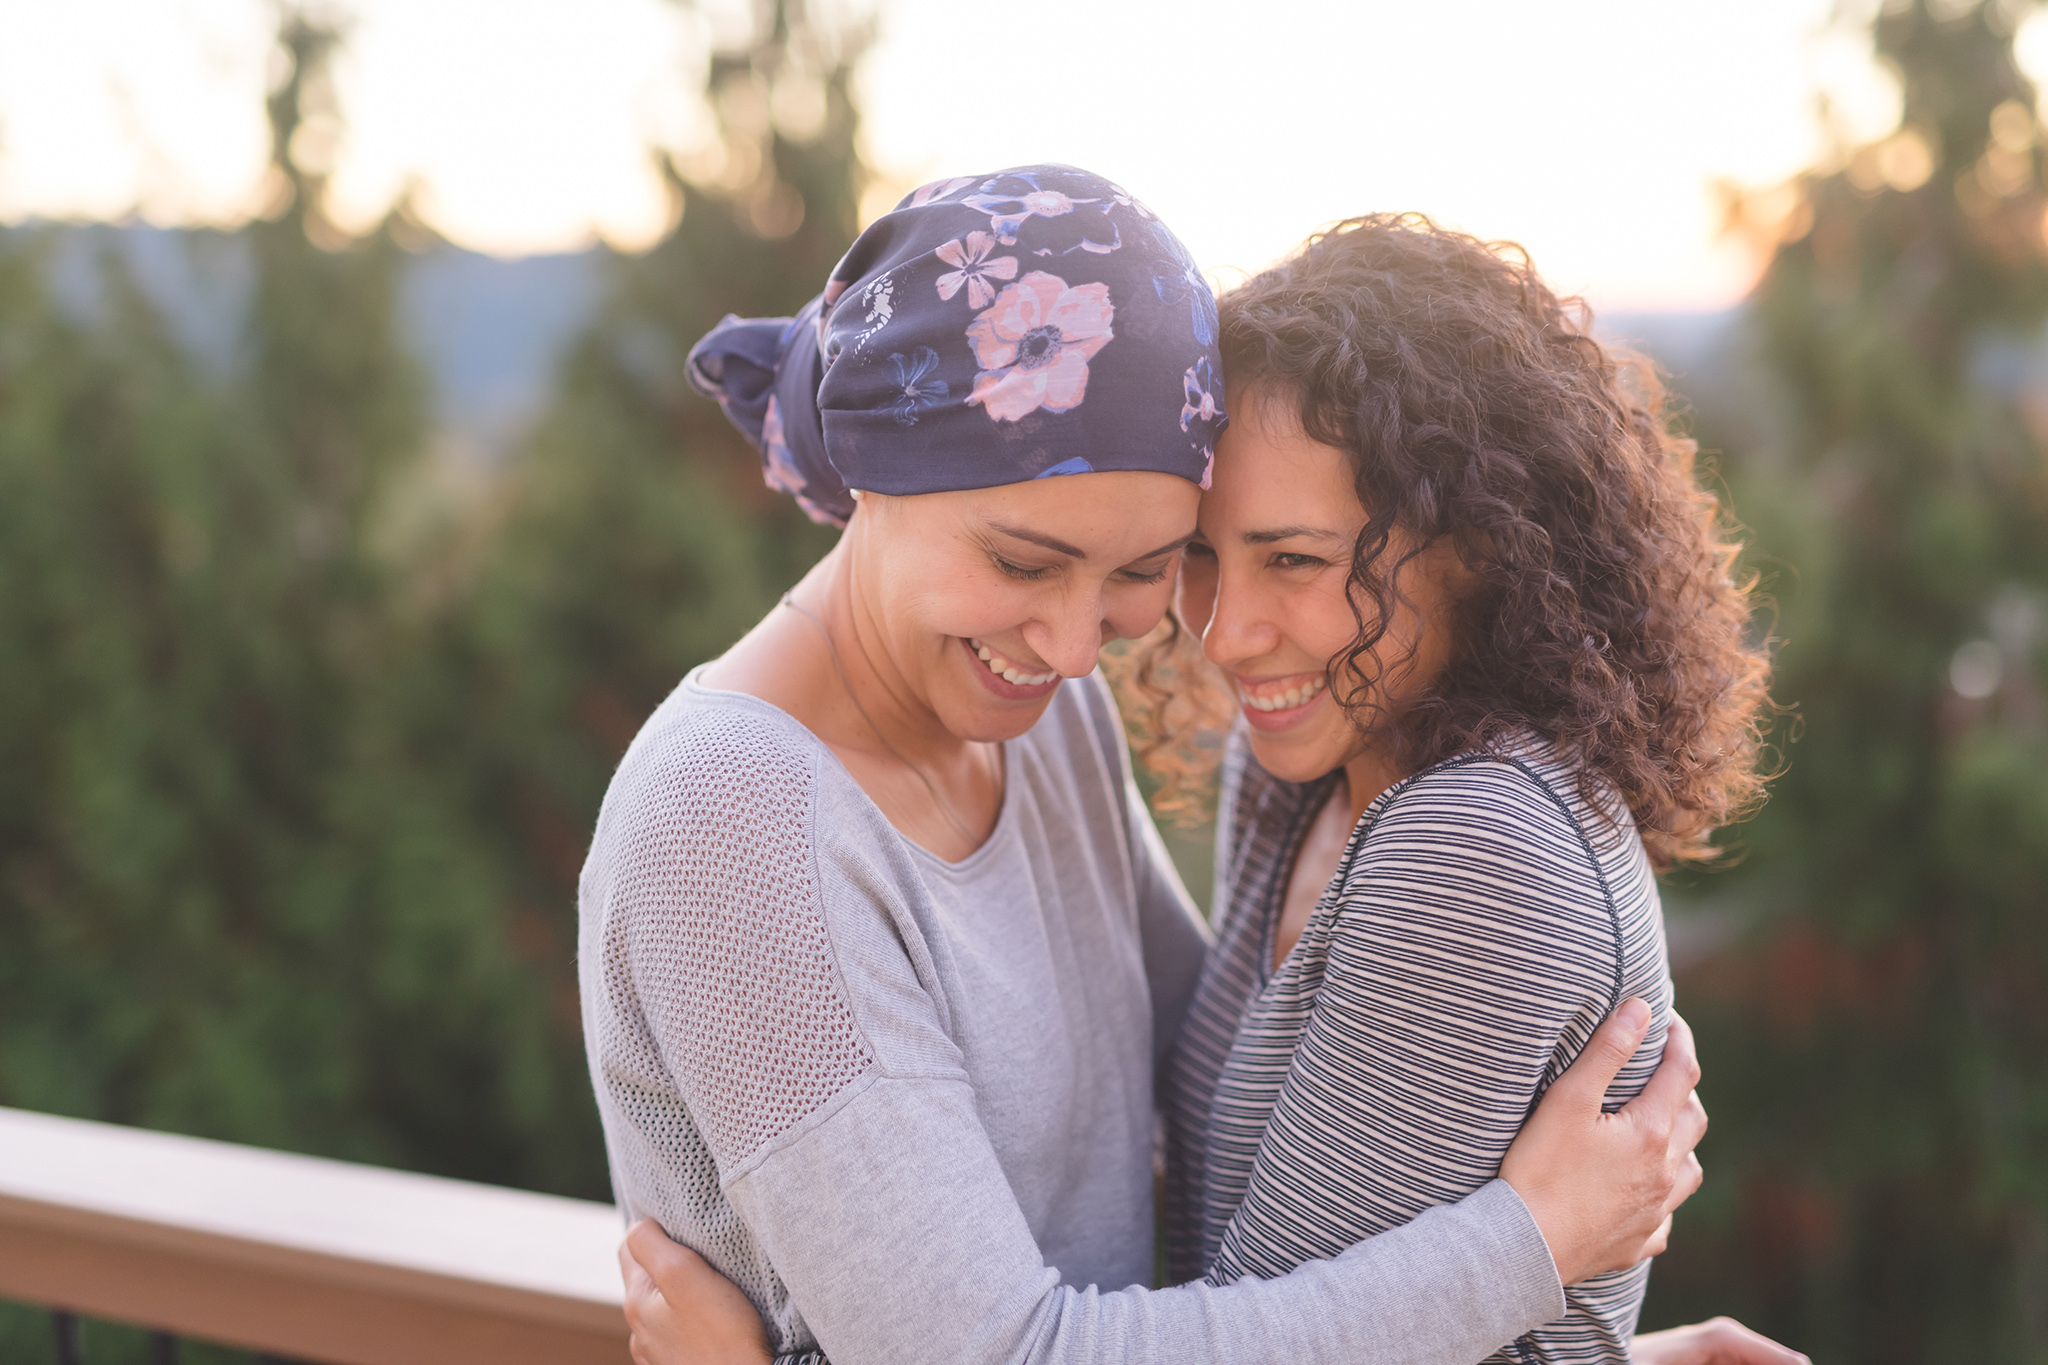 Woman cancer patient with scarf hugging another woman